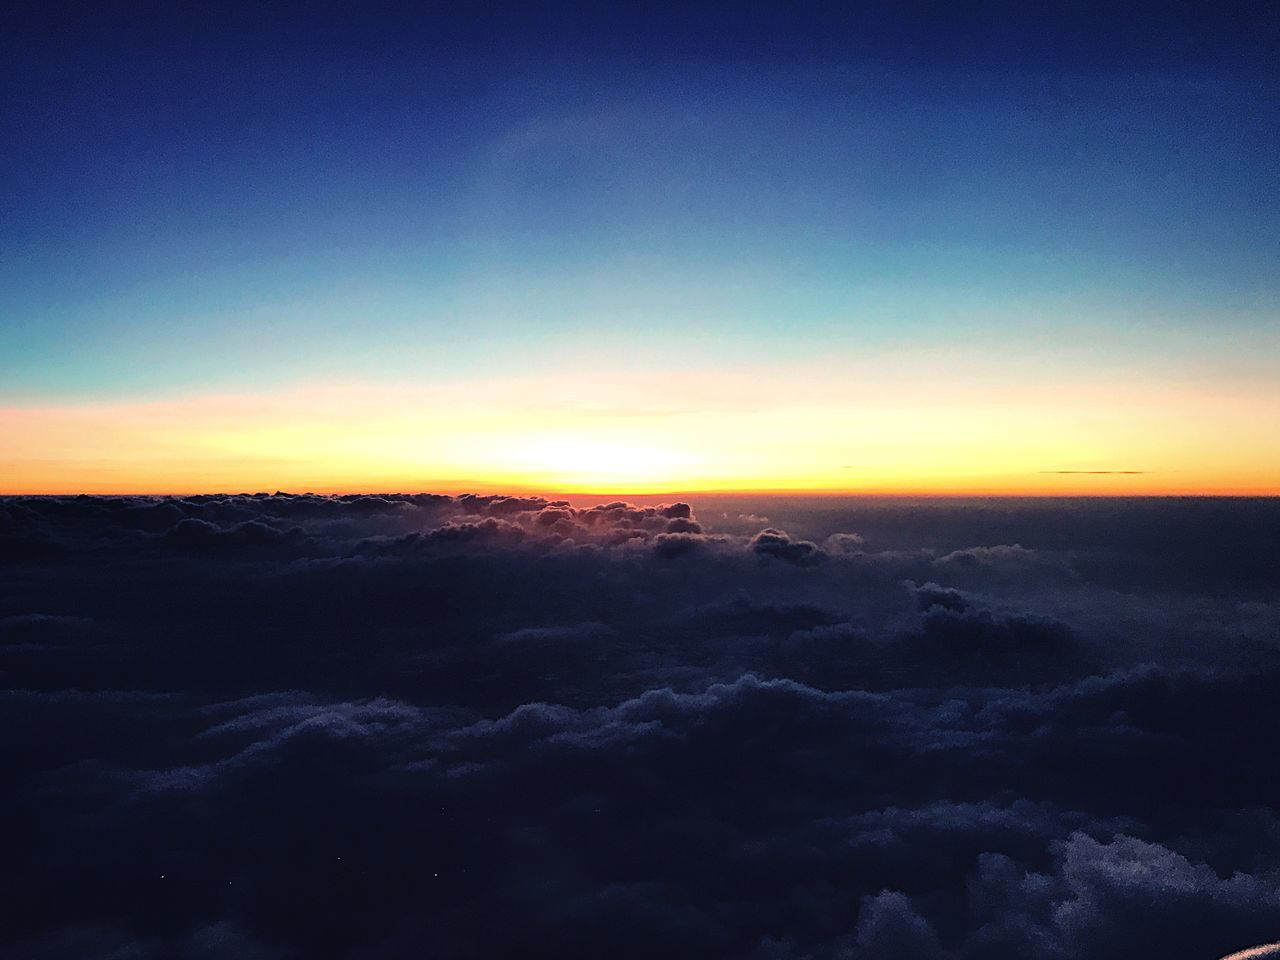 Sunset on the plane with clouds Nature Beauty In Nature Scenics Sky Tranquility Tranquil Scene Idyllic Sunset No People Outdoors Day